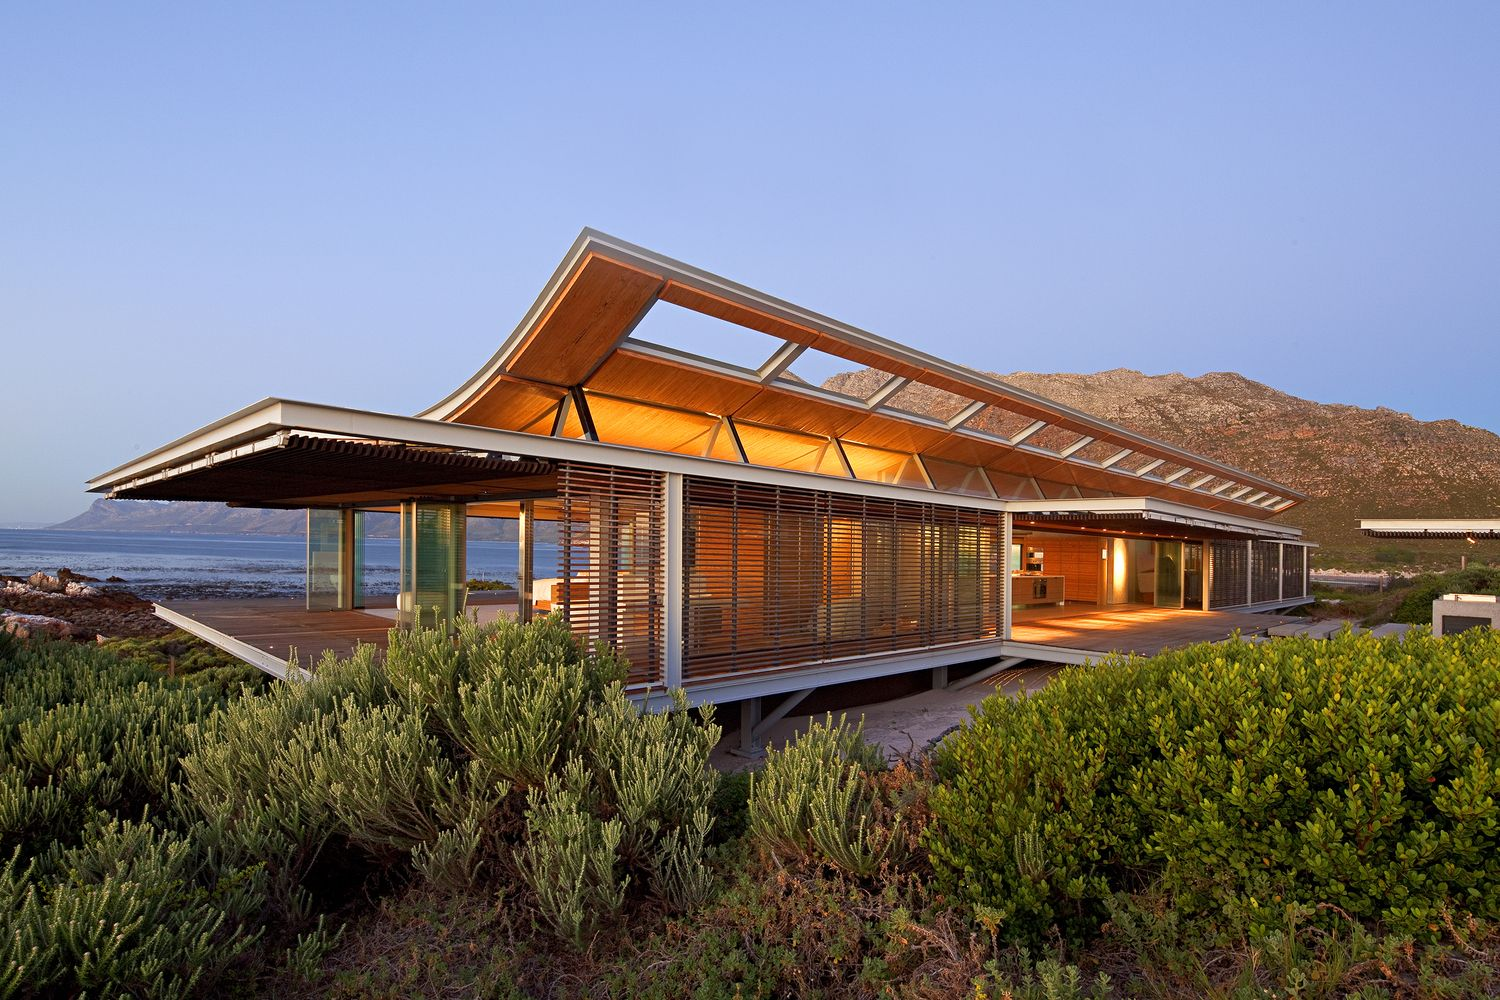 Gallery Of Rooiels Beach House Elphick Proome Architects 14 Contemporary Beach House Modern Beach House Architecture